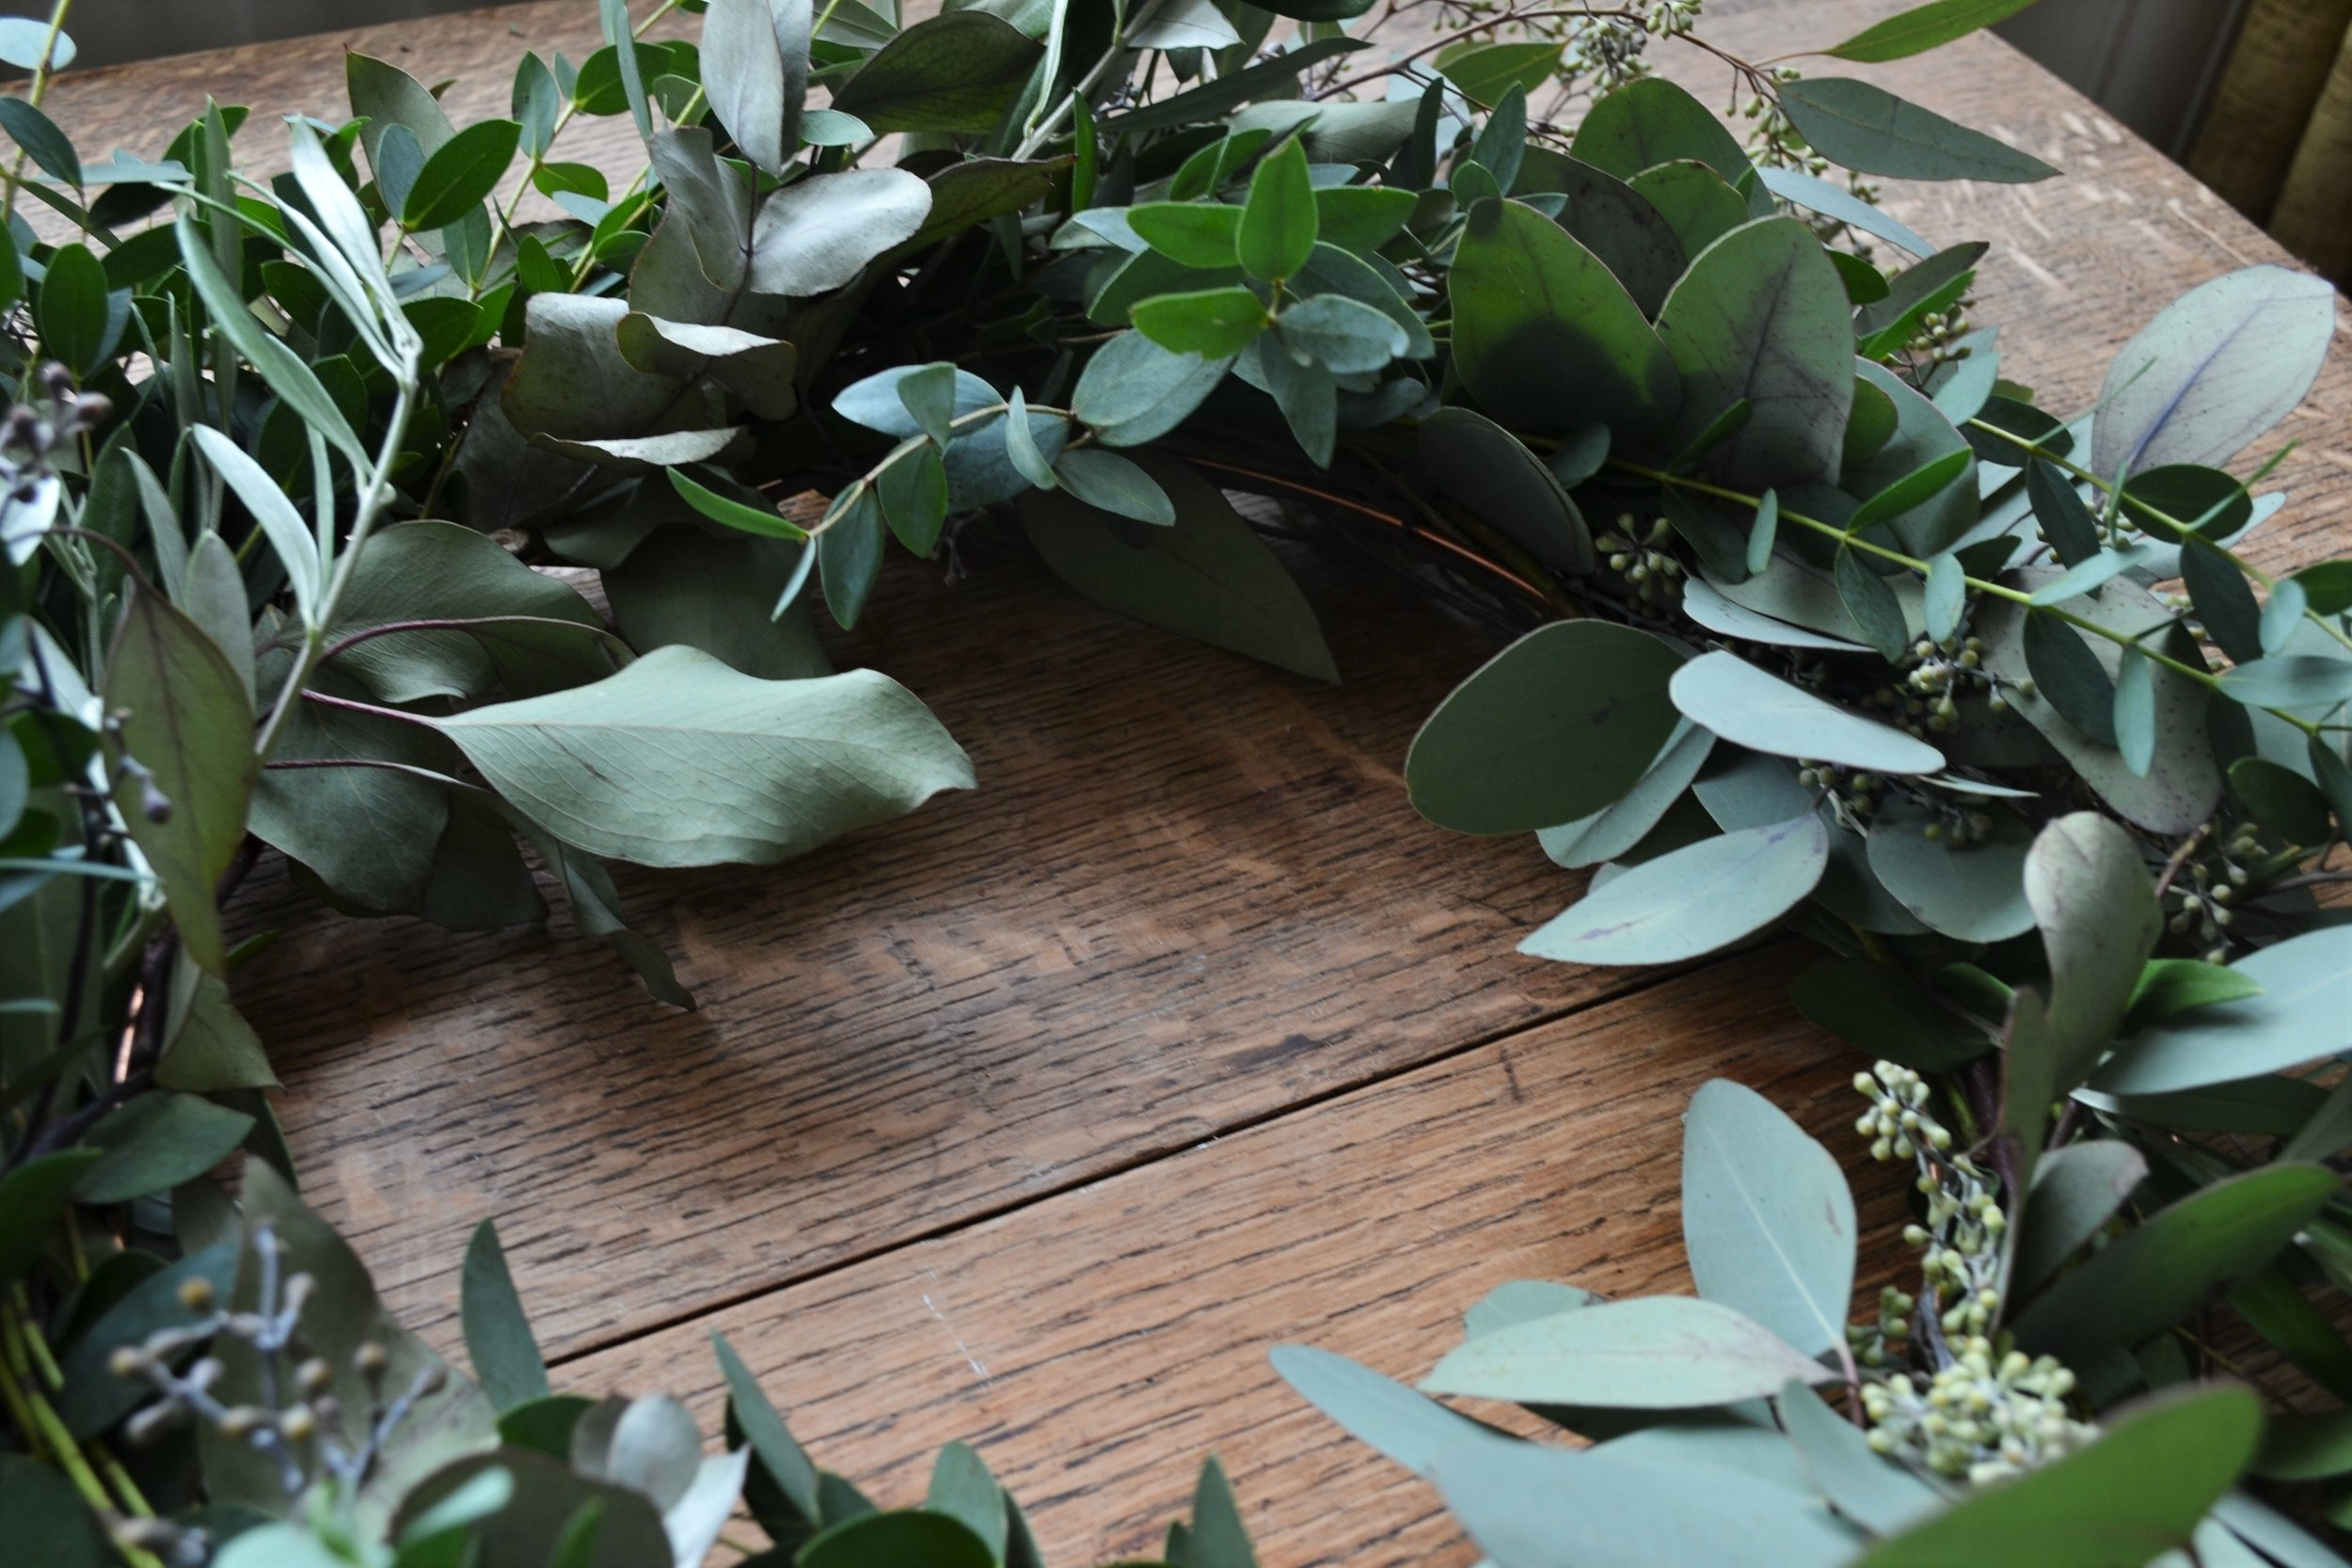 How-to-make-an-autumn-wreath-webb-and-farrer-brighton-flower-workshop (5).JPG